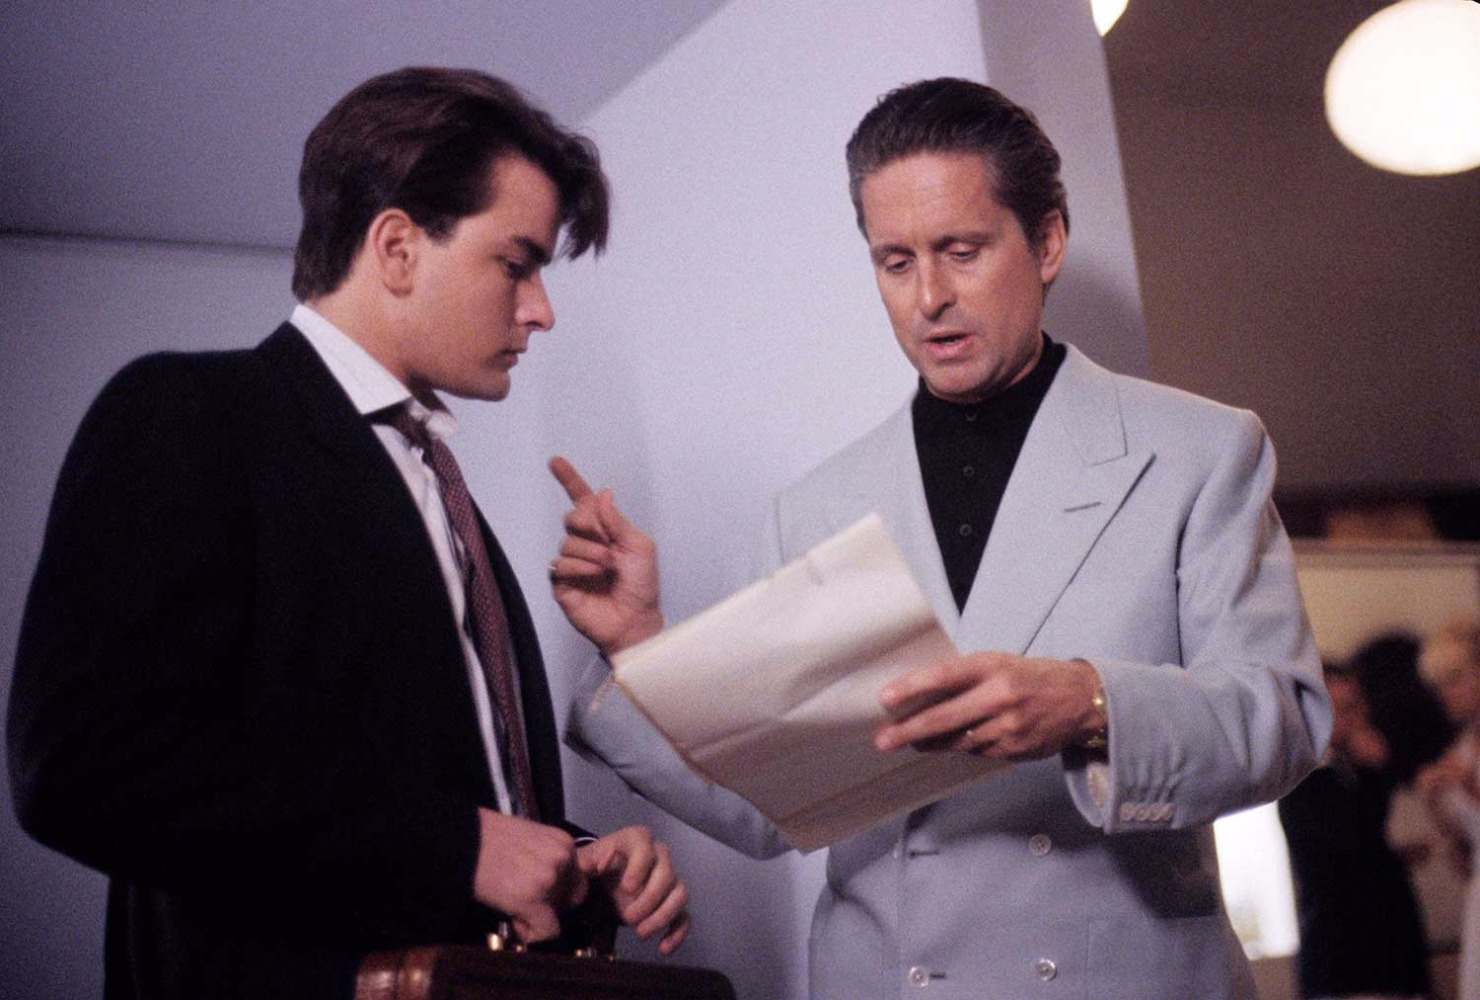 Bud Fox and Gordon Gekko in Wall Street.